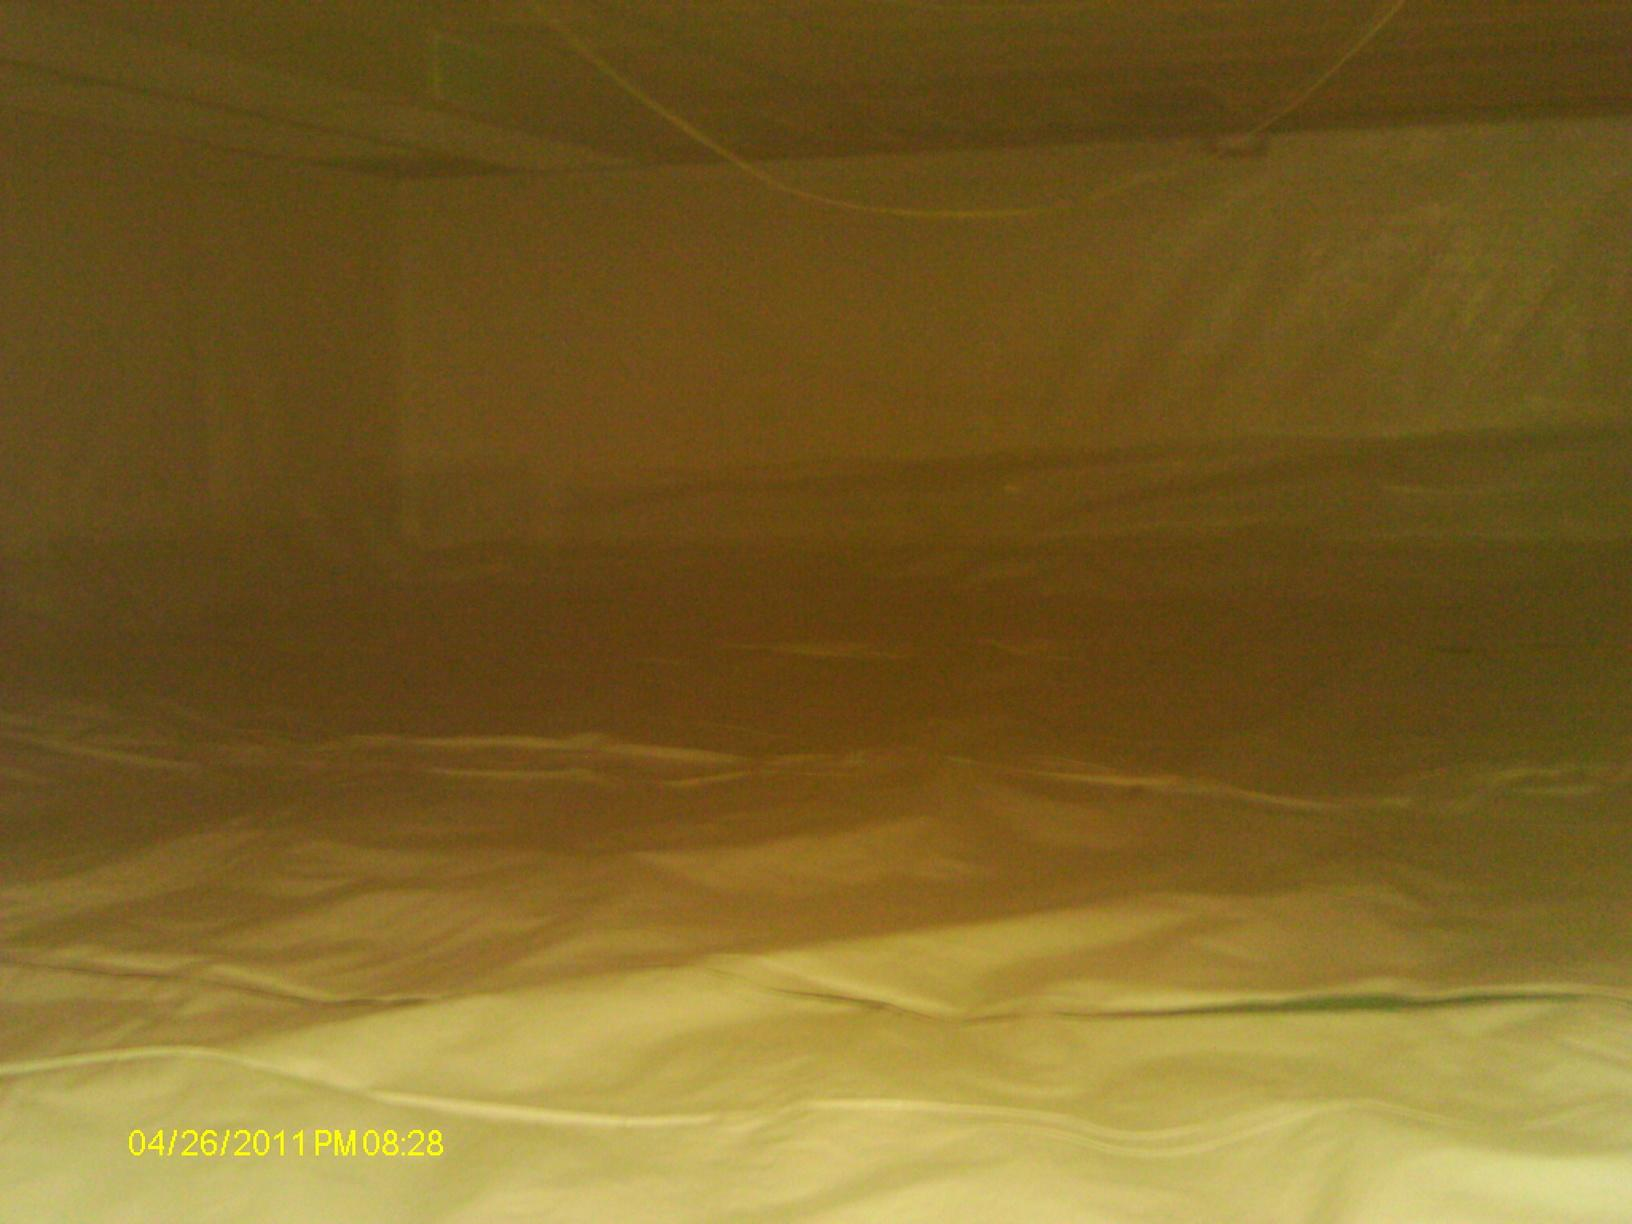 CleanSpace liners are perfect for sealing the crawl space from outside influences.